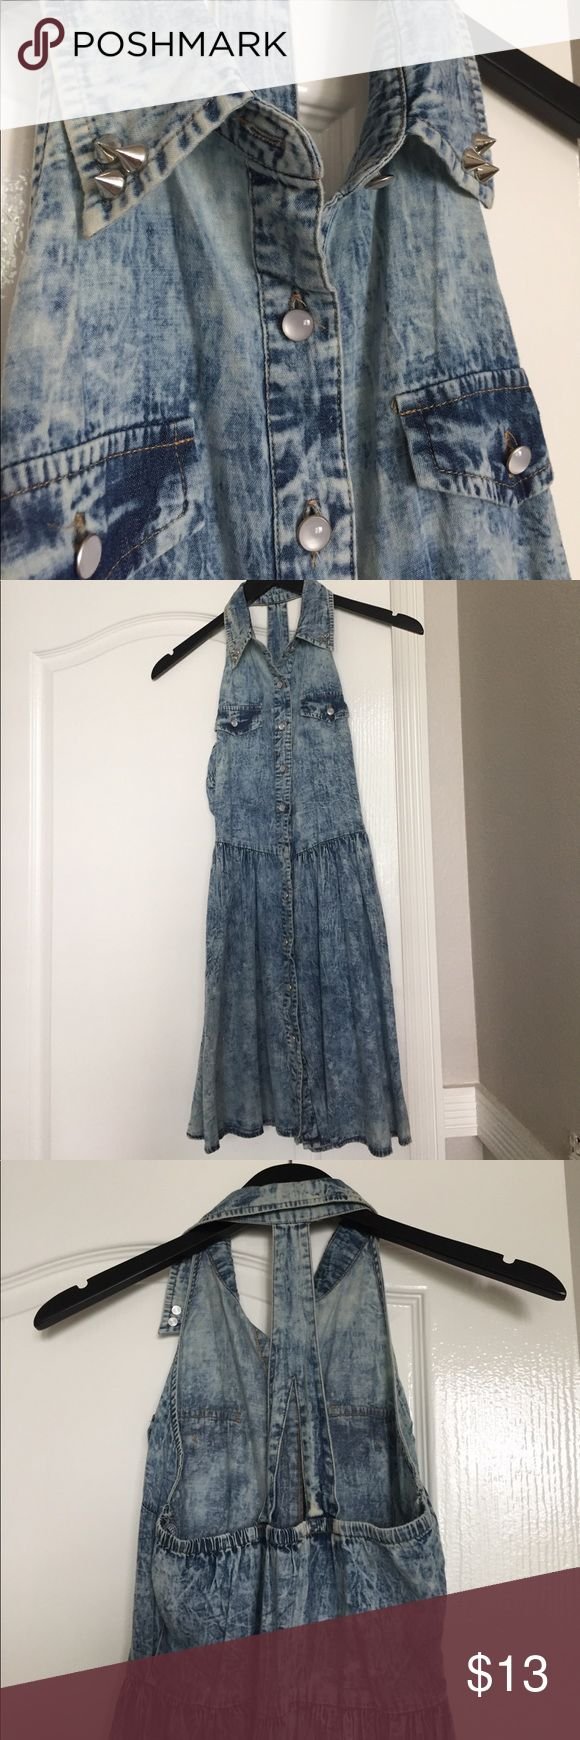 Denim Skater Dress // PACSUN 💎💙 Denim Skater girl dress from PACSUN💙💎 racer back / color with studs / buttons all the way up the front! Soooo cute and only worn once*** PacSun Dresses Mini